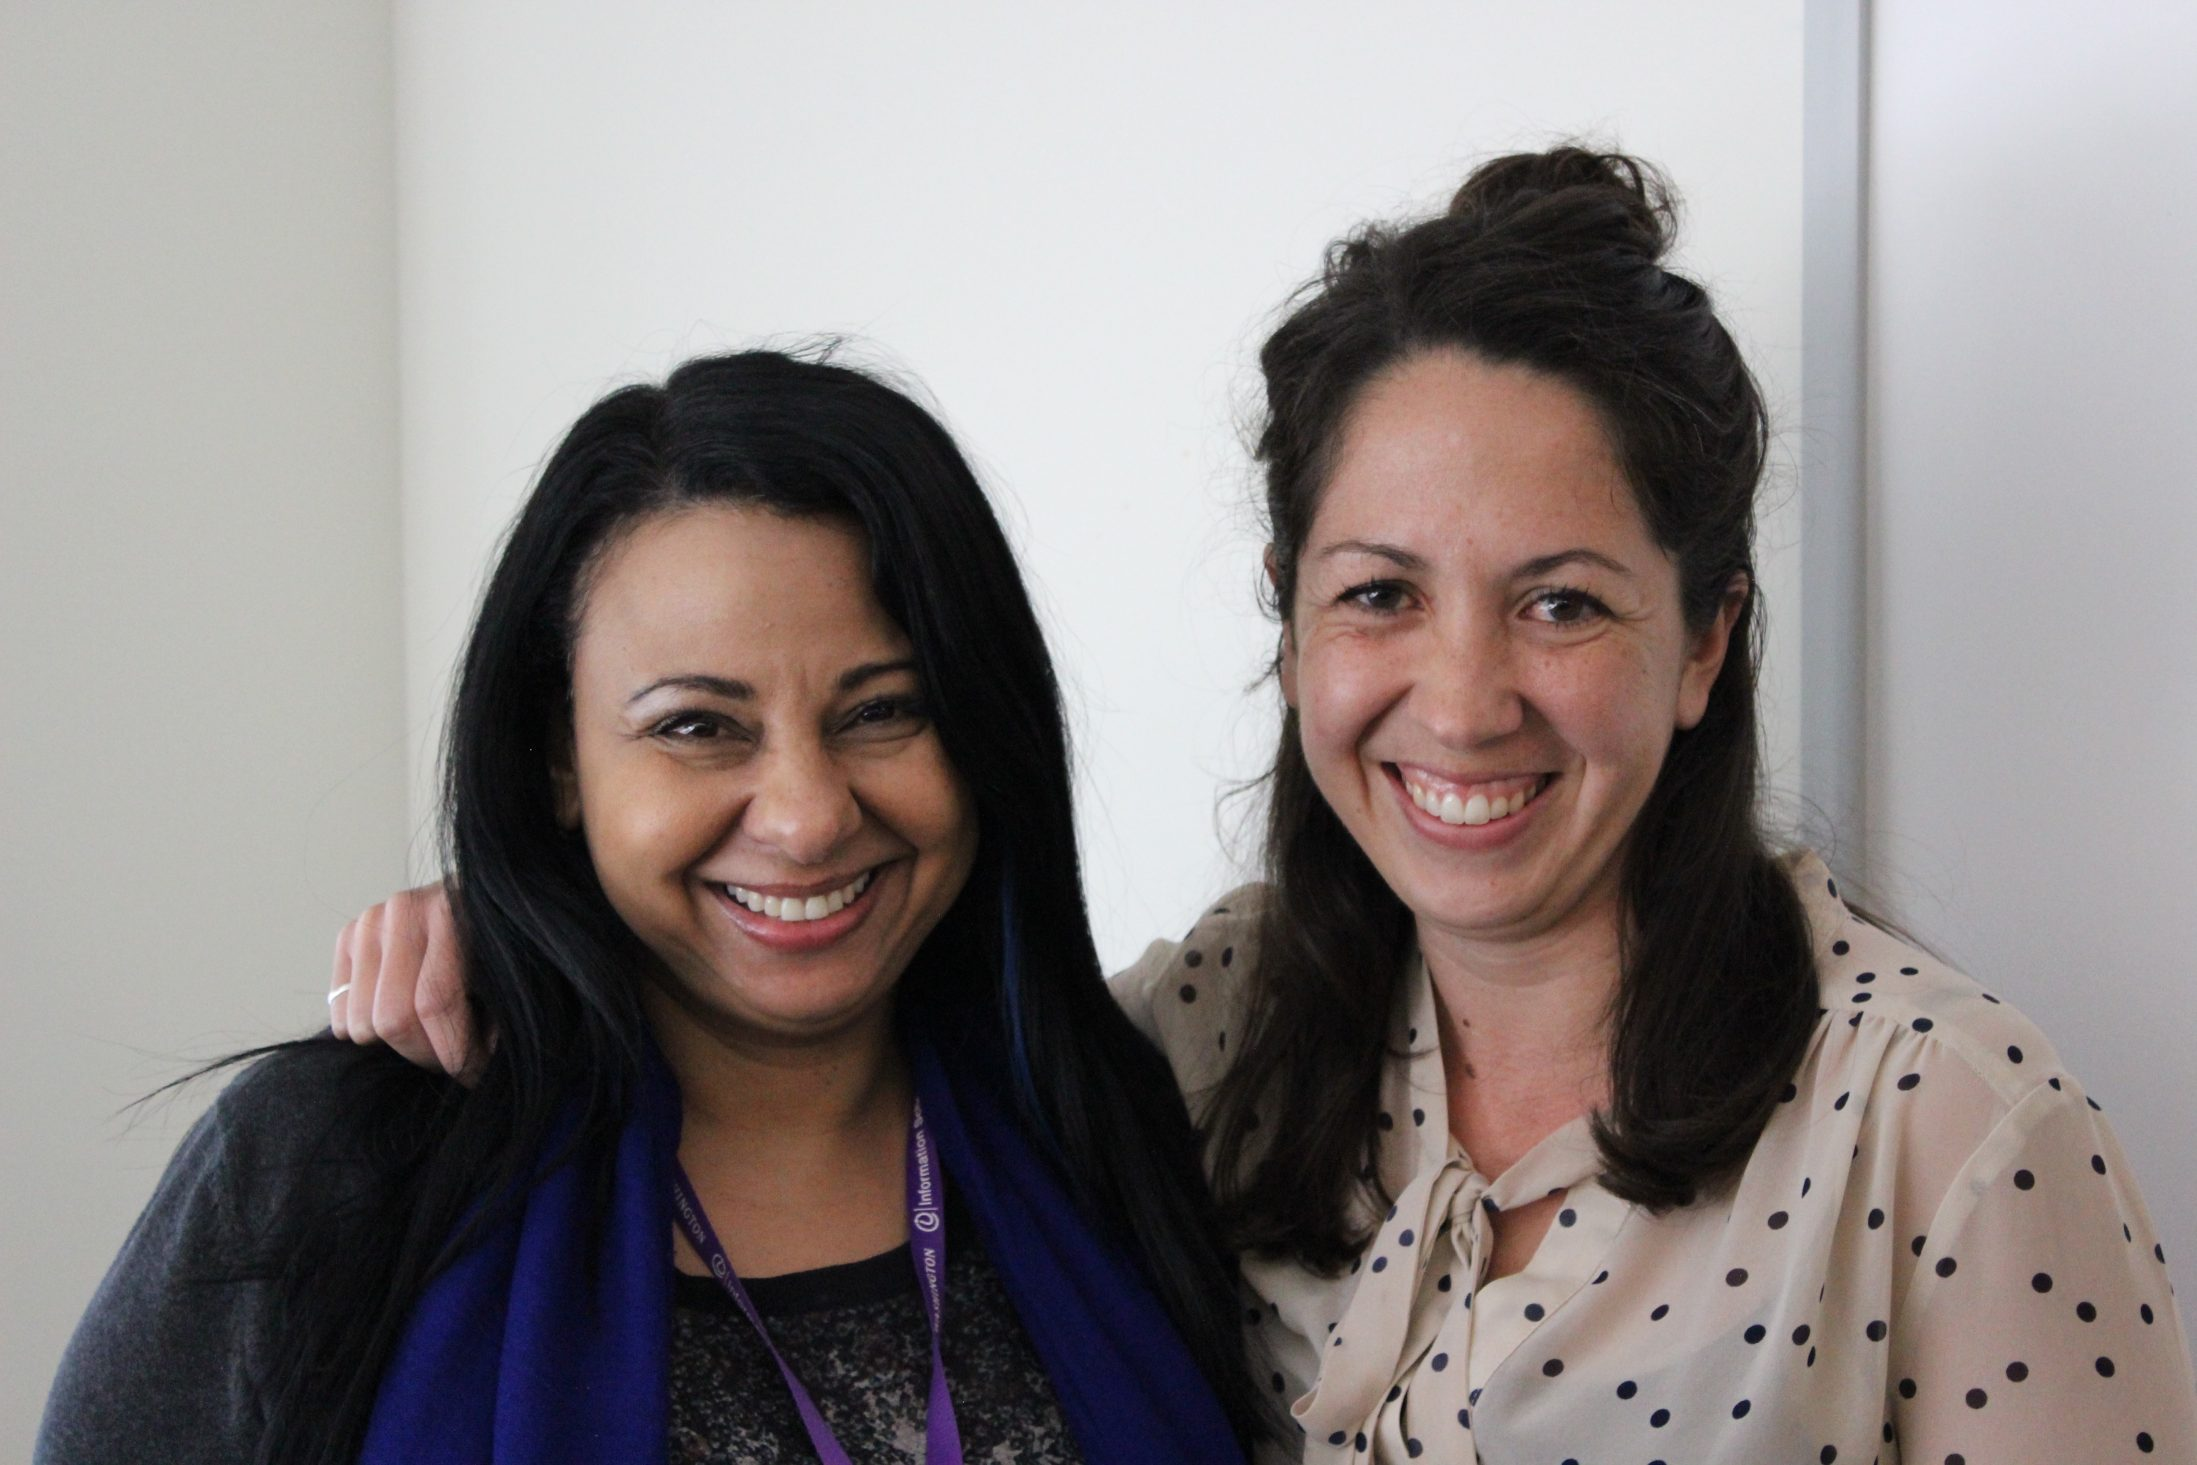 Lydia Saleh Rofail and Lydia Heberling, 2016 Wertheim Prize Recipients